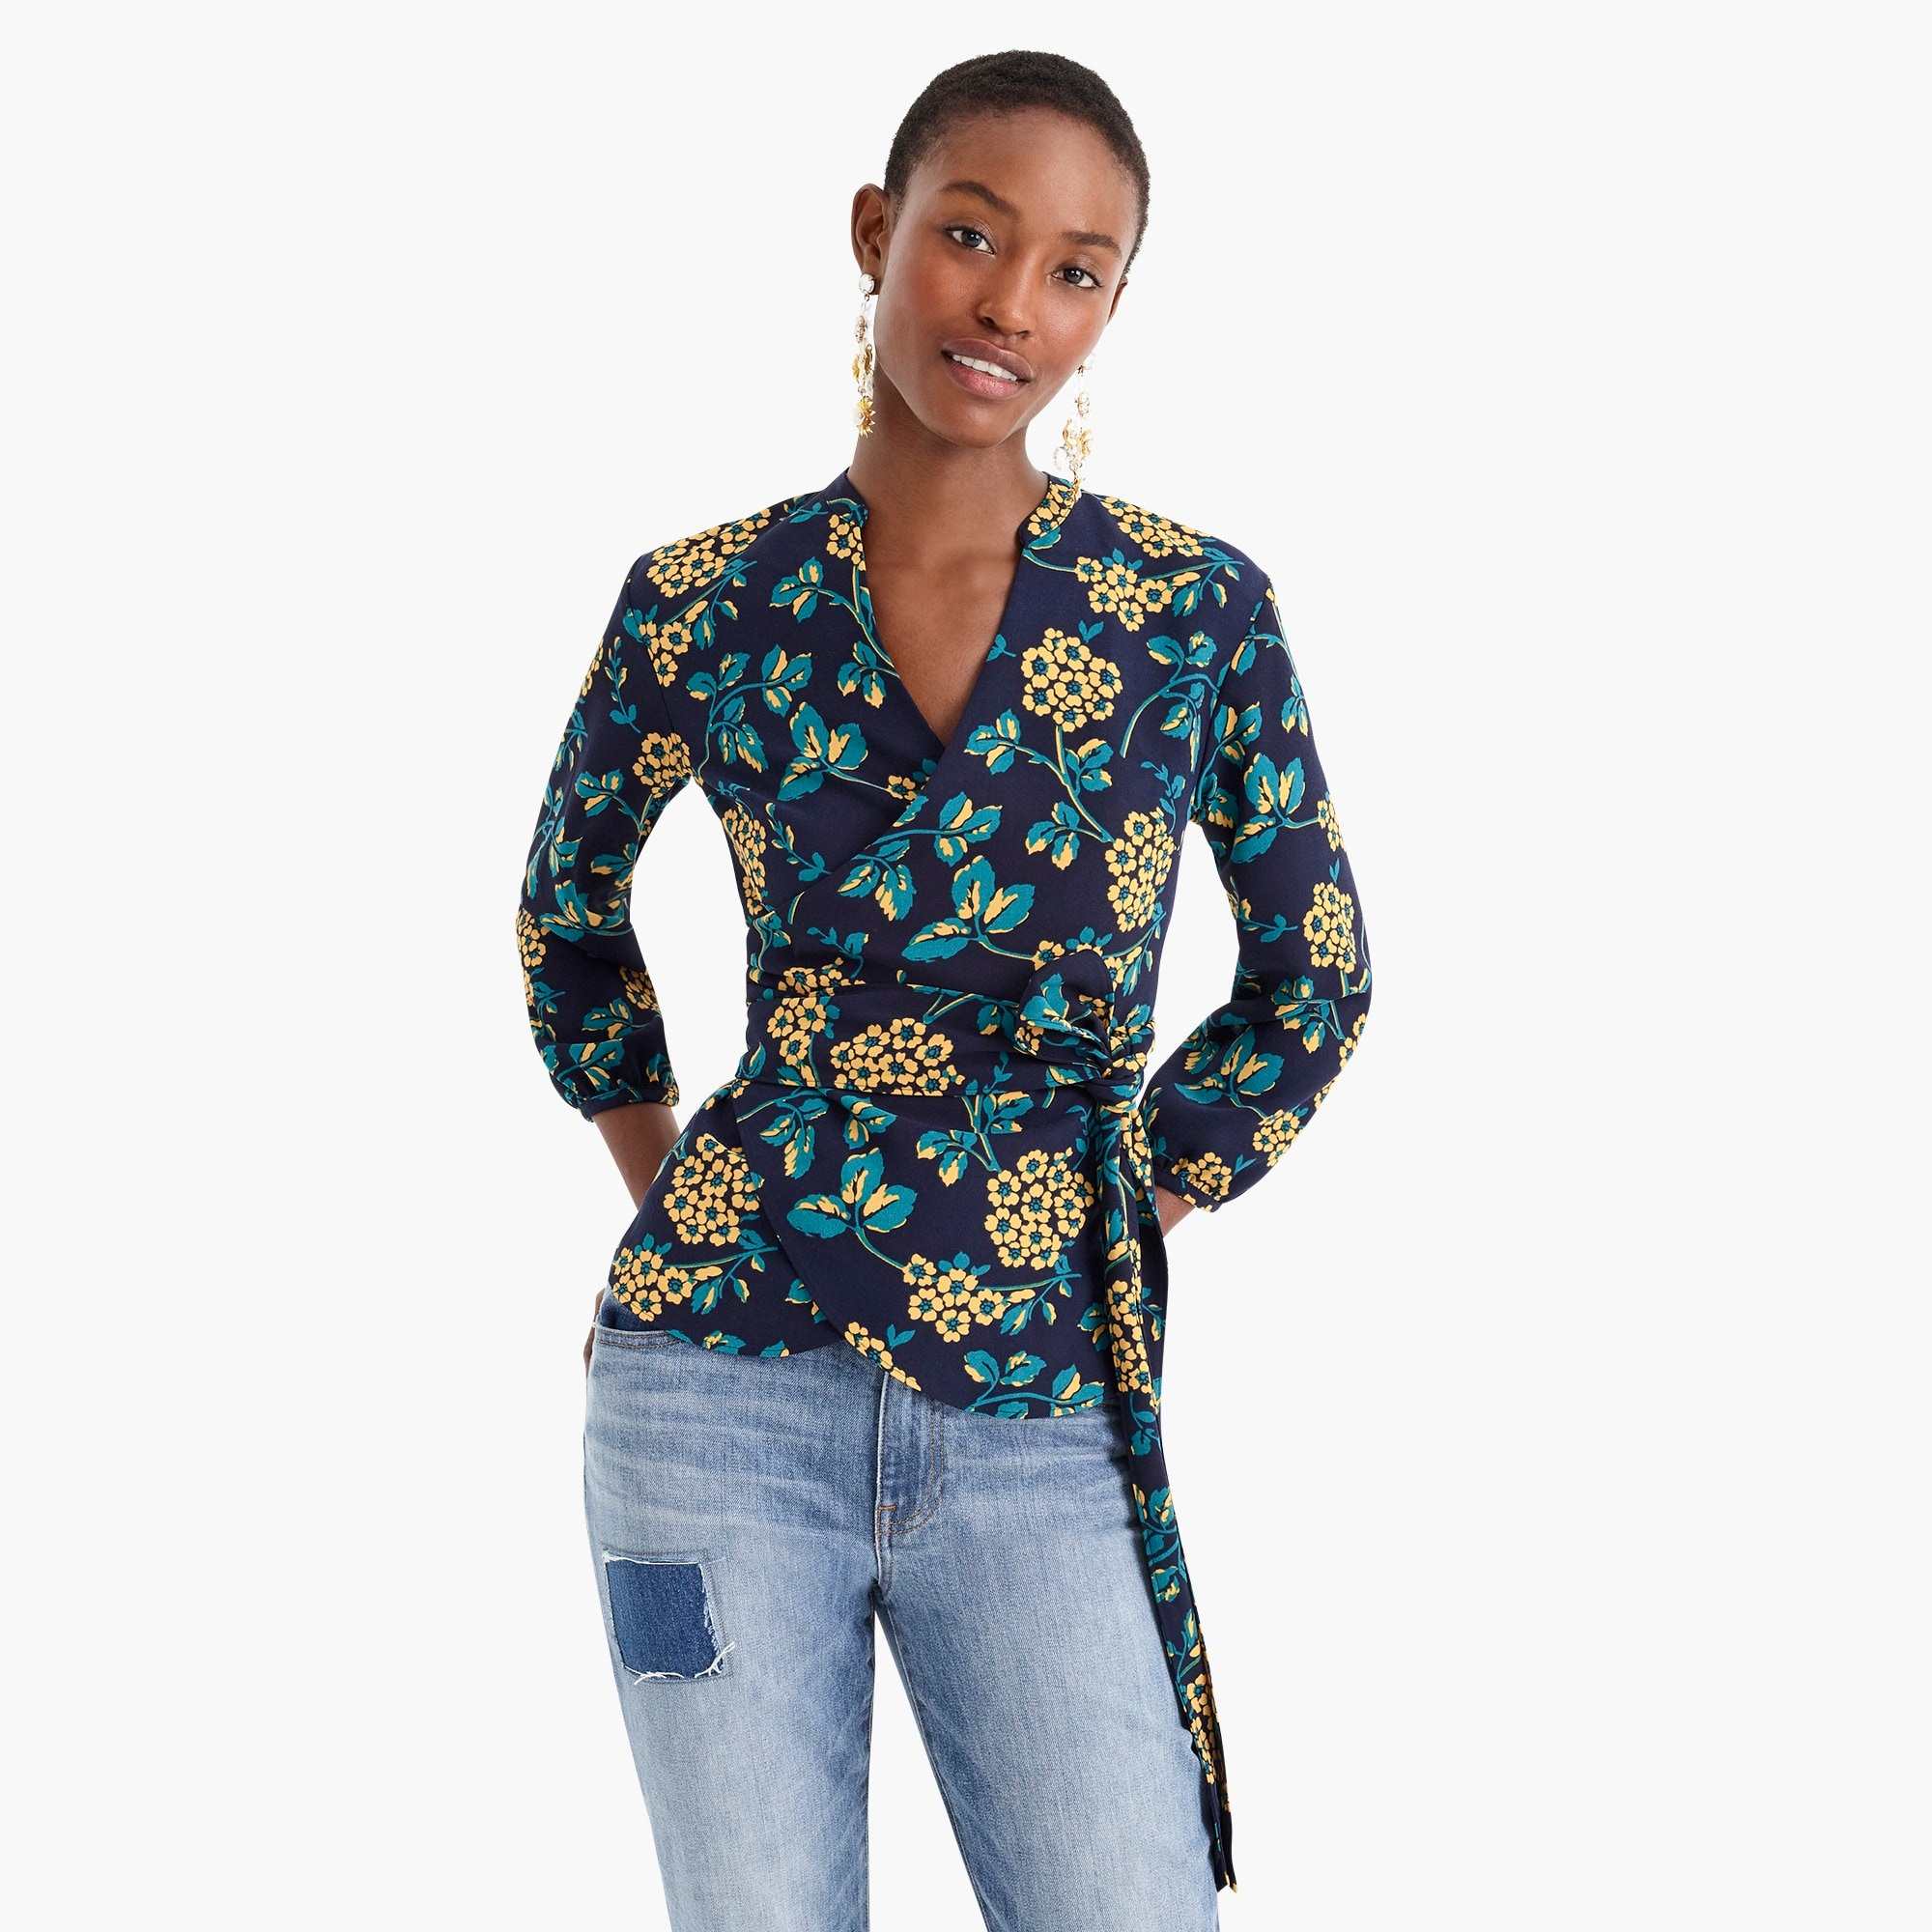 Image 3 for Petite drapey crepe wrap top in floral